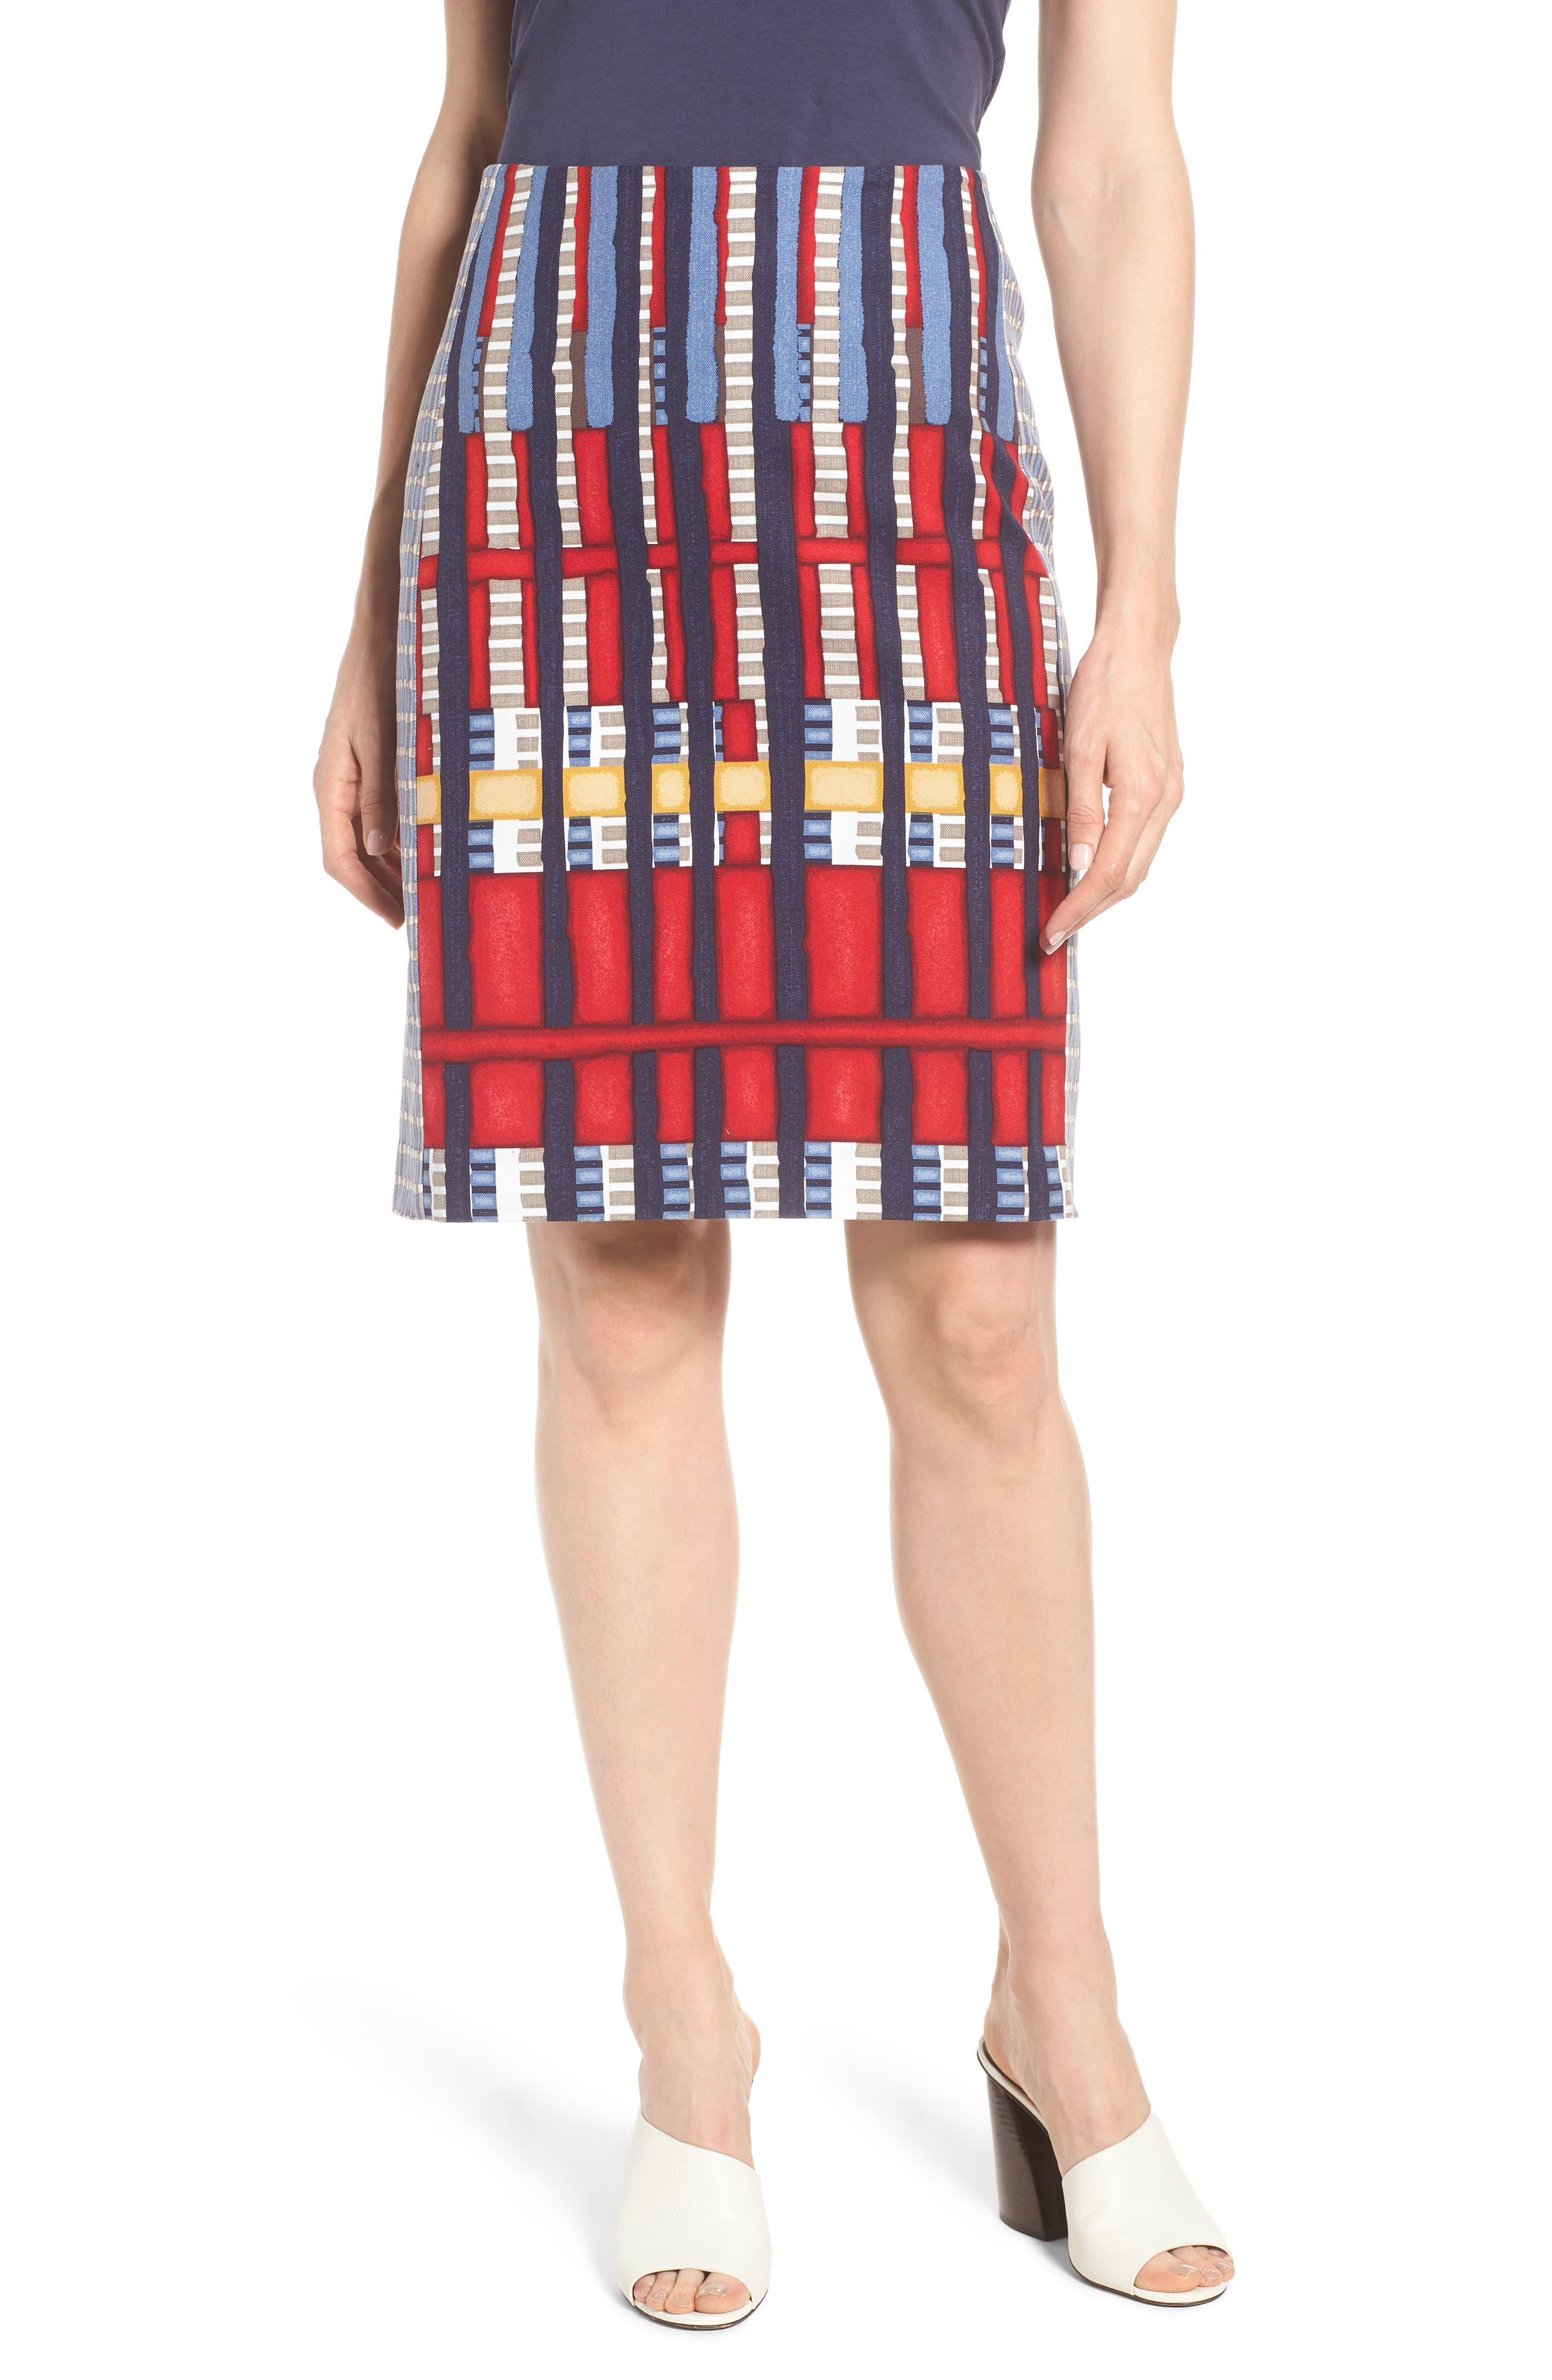 Santiago Hills Block Skirt,                         Main,                         color,